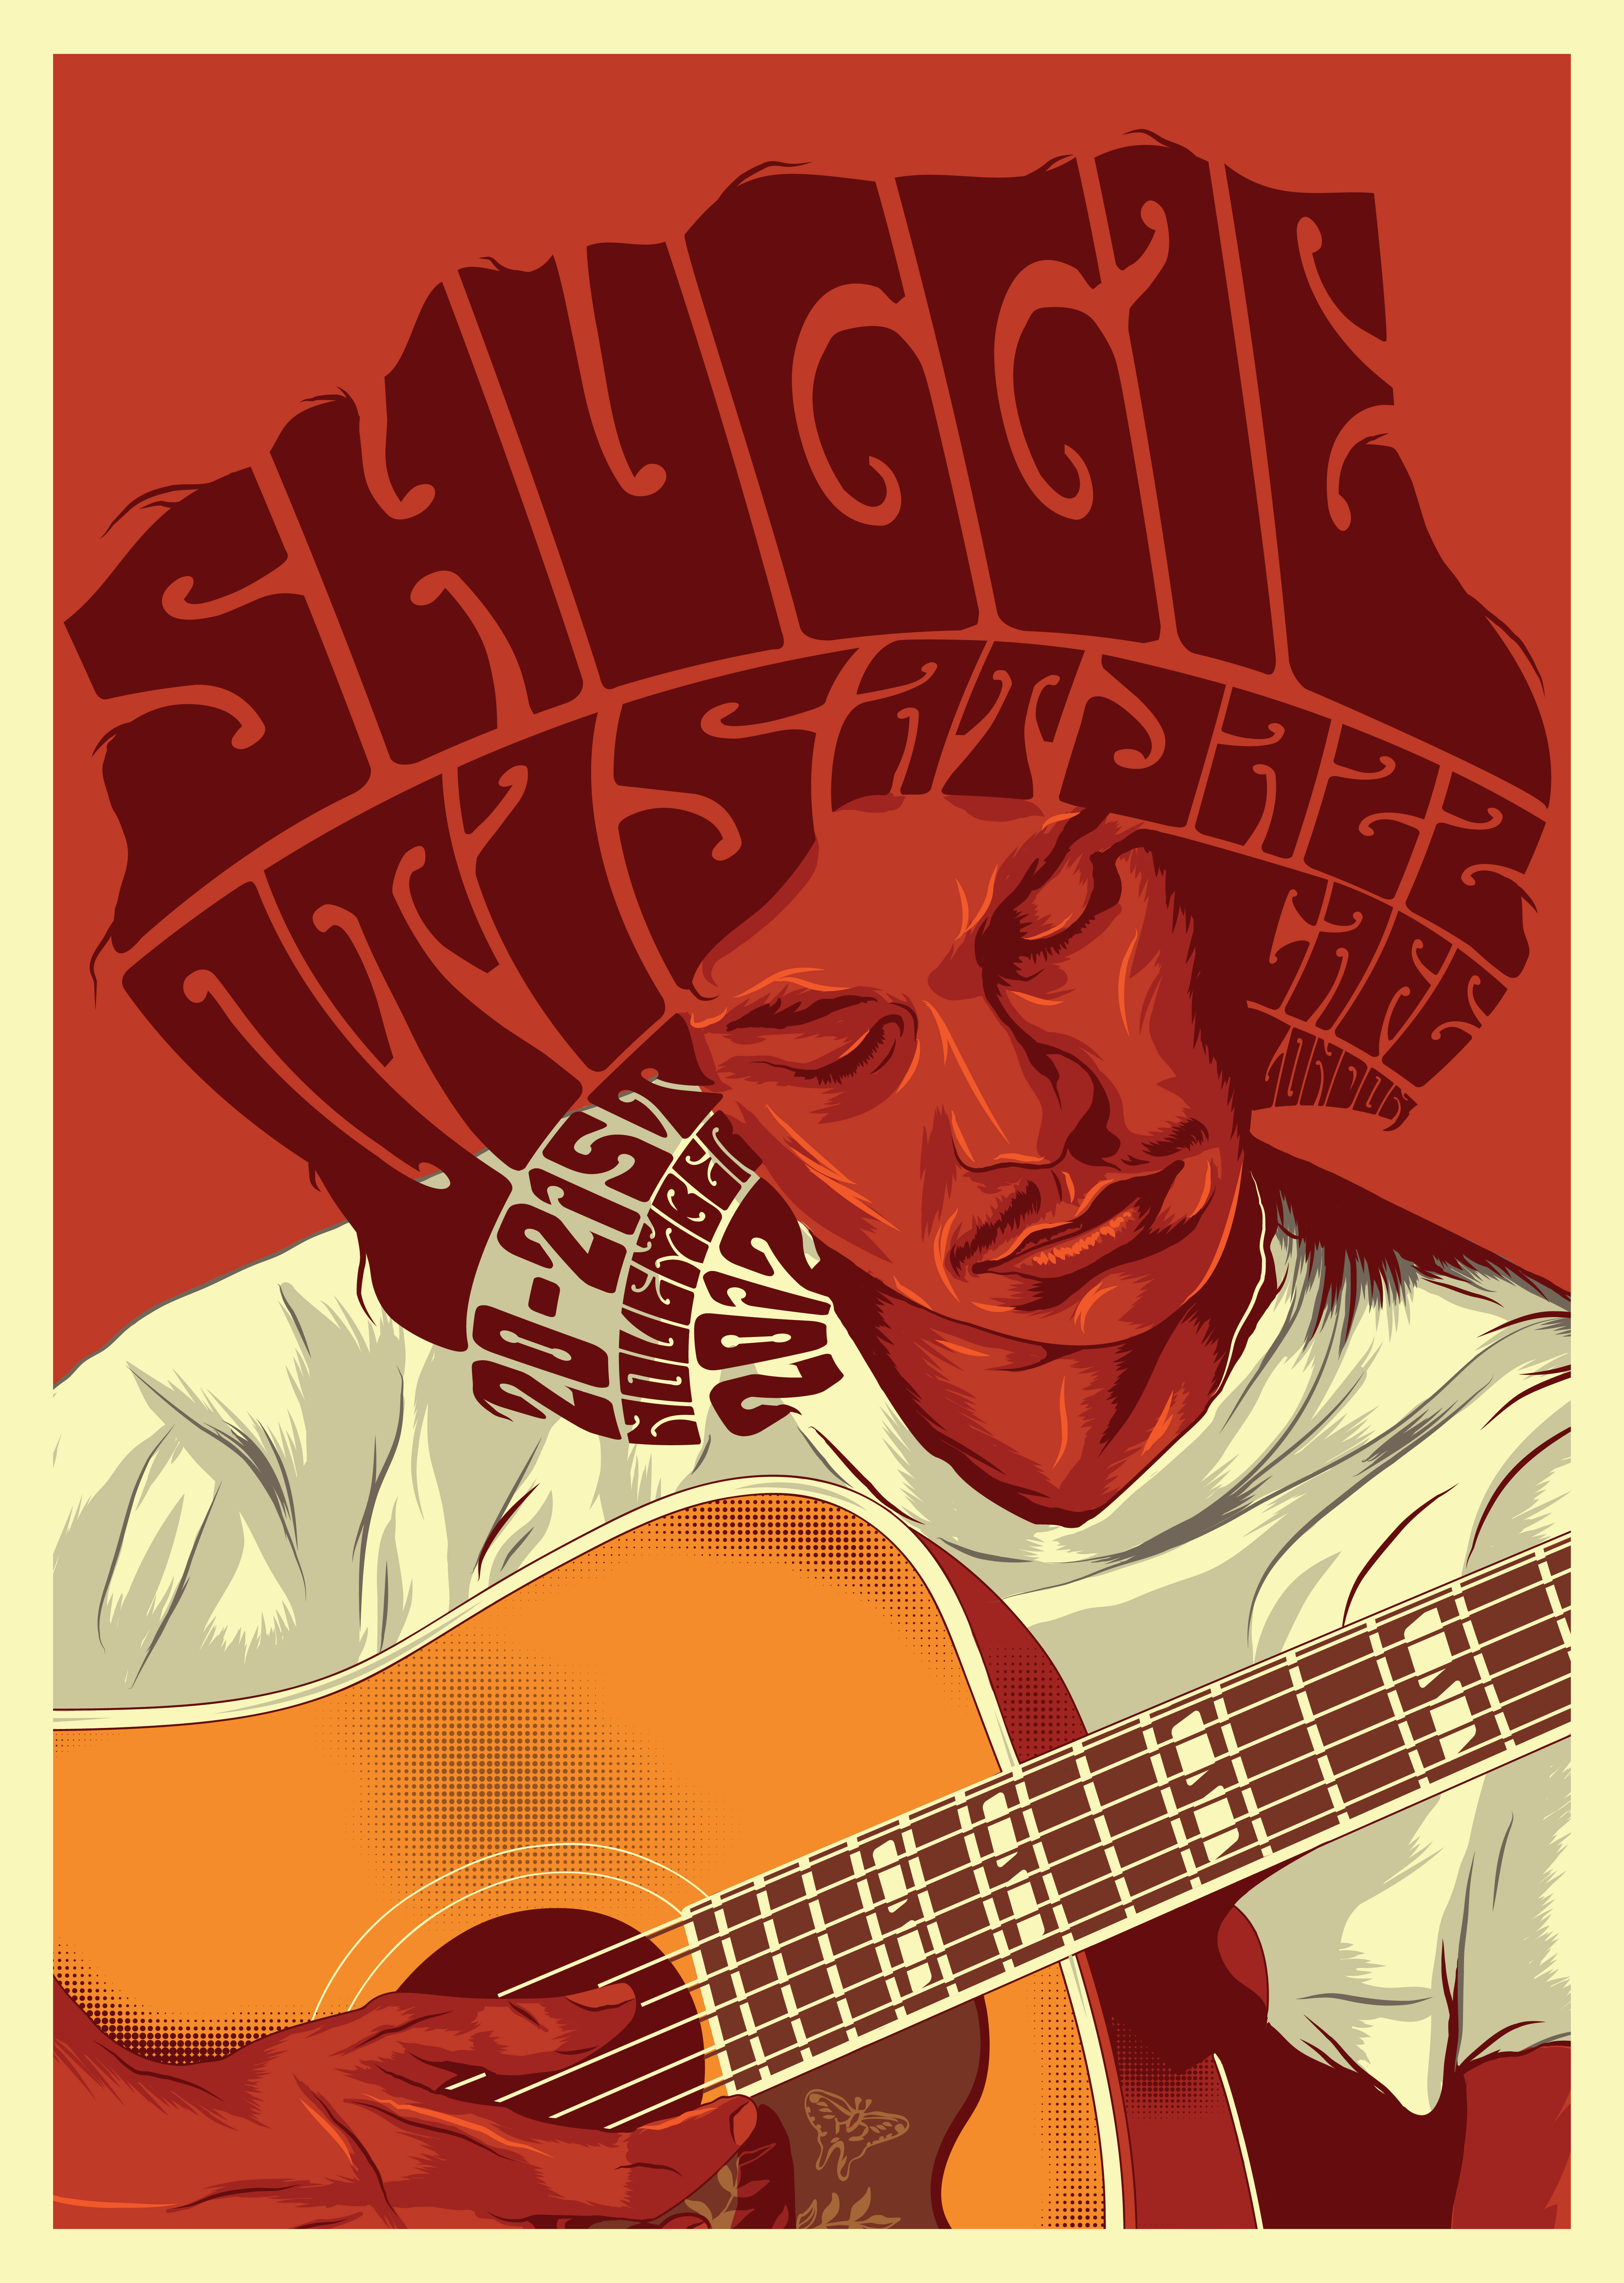 Shuggie Otis At Jazz Cafe Gig Poster